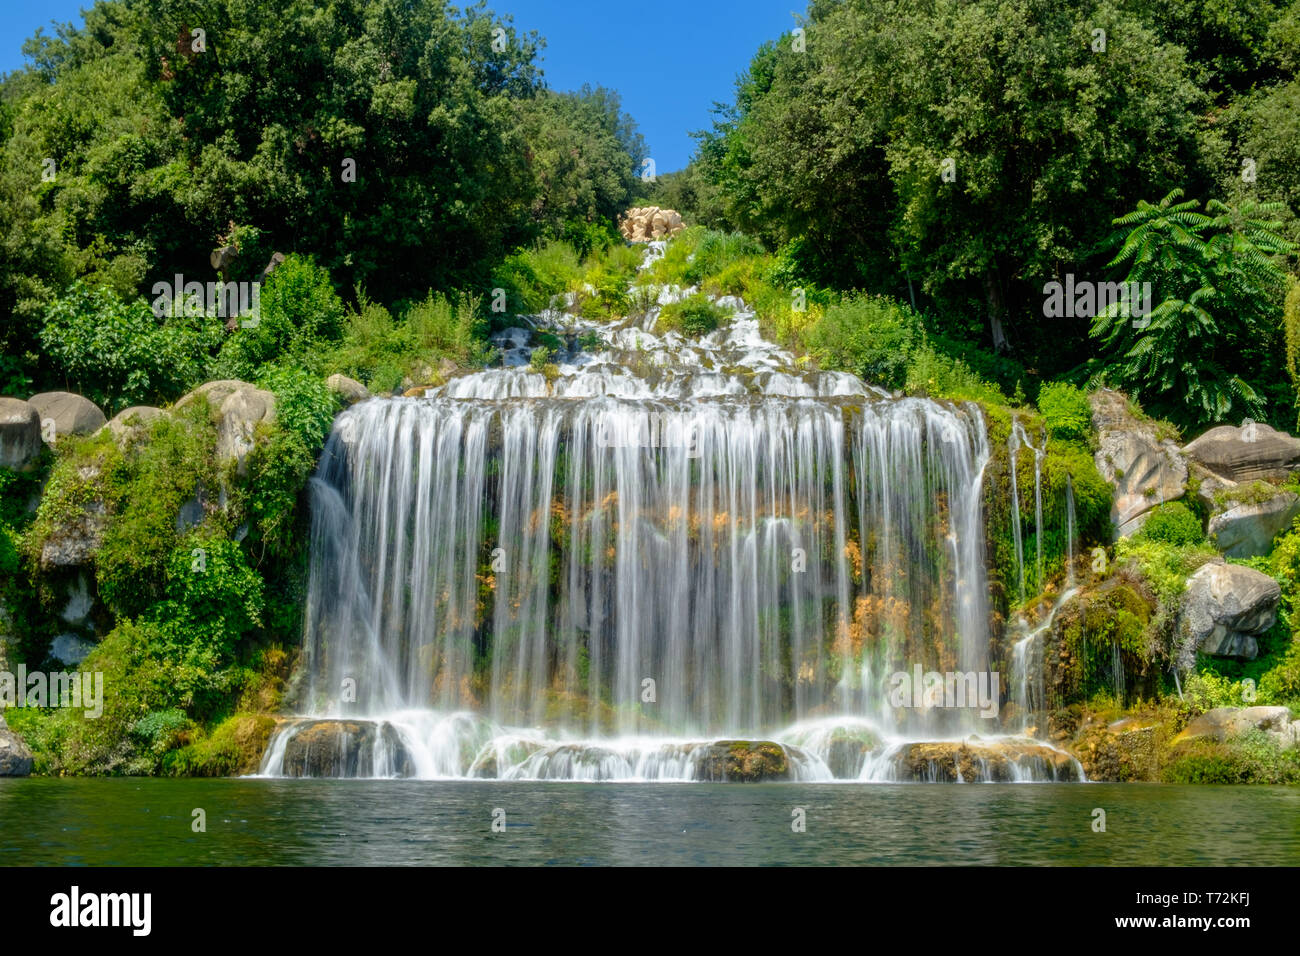 The big waterfall at the end of the park of the 'Reggia di Caserta' falls as a water curtain. The water streams down Briano mountain. - Stock Image